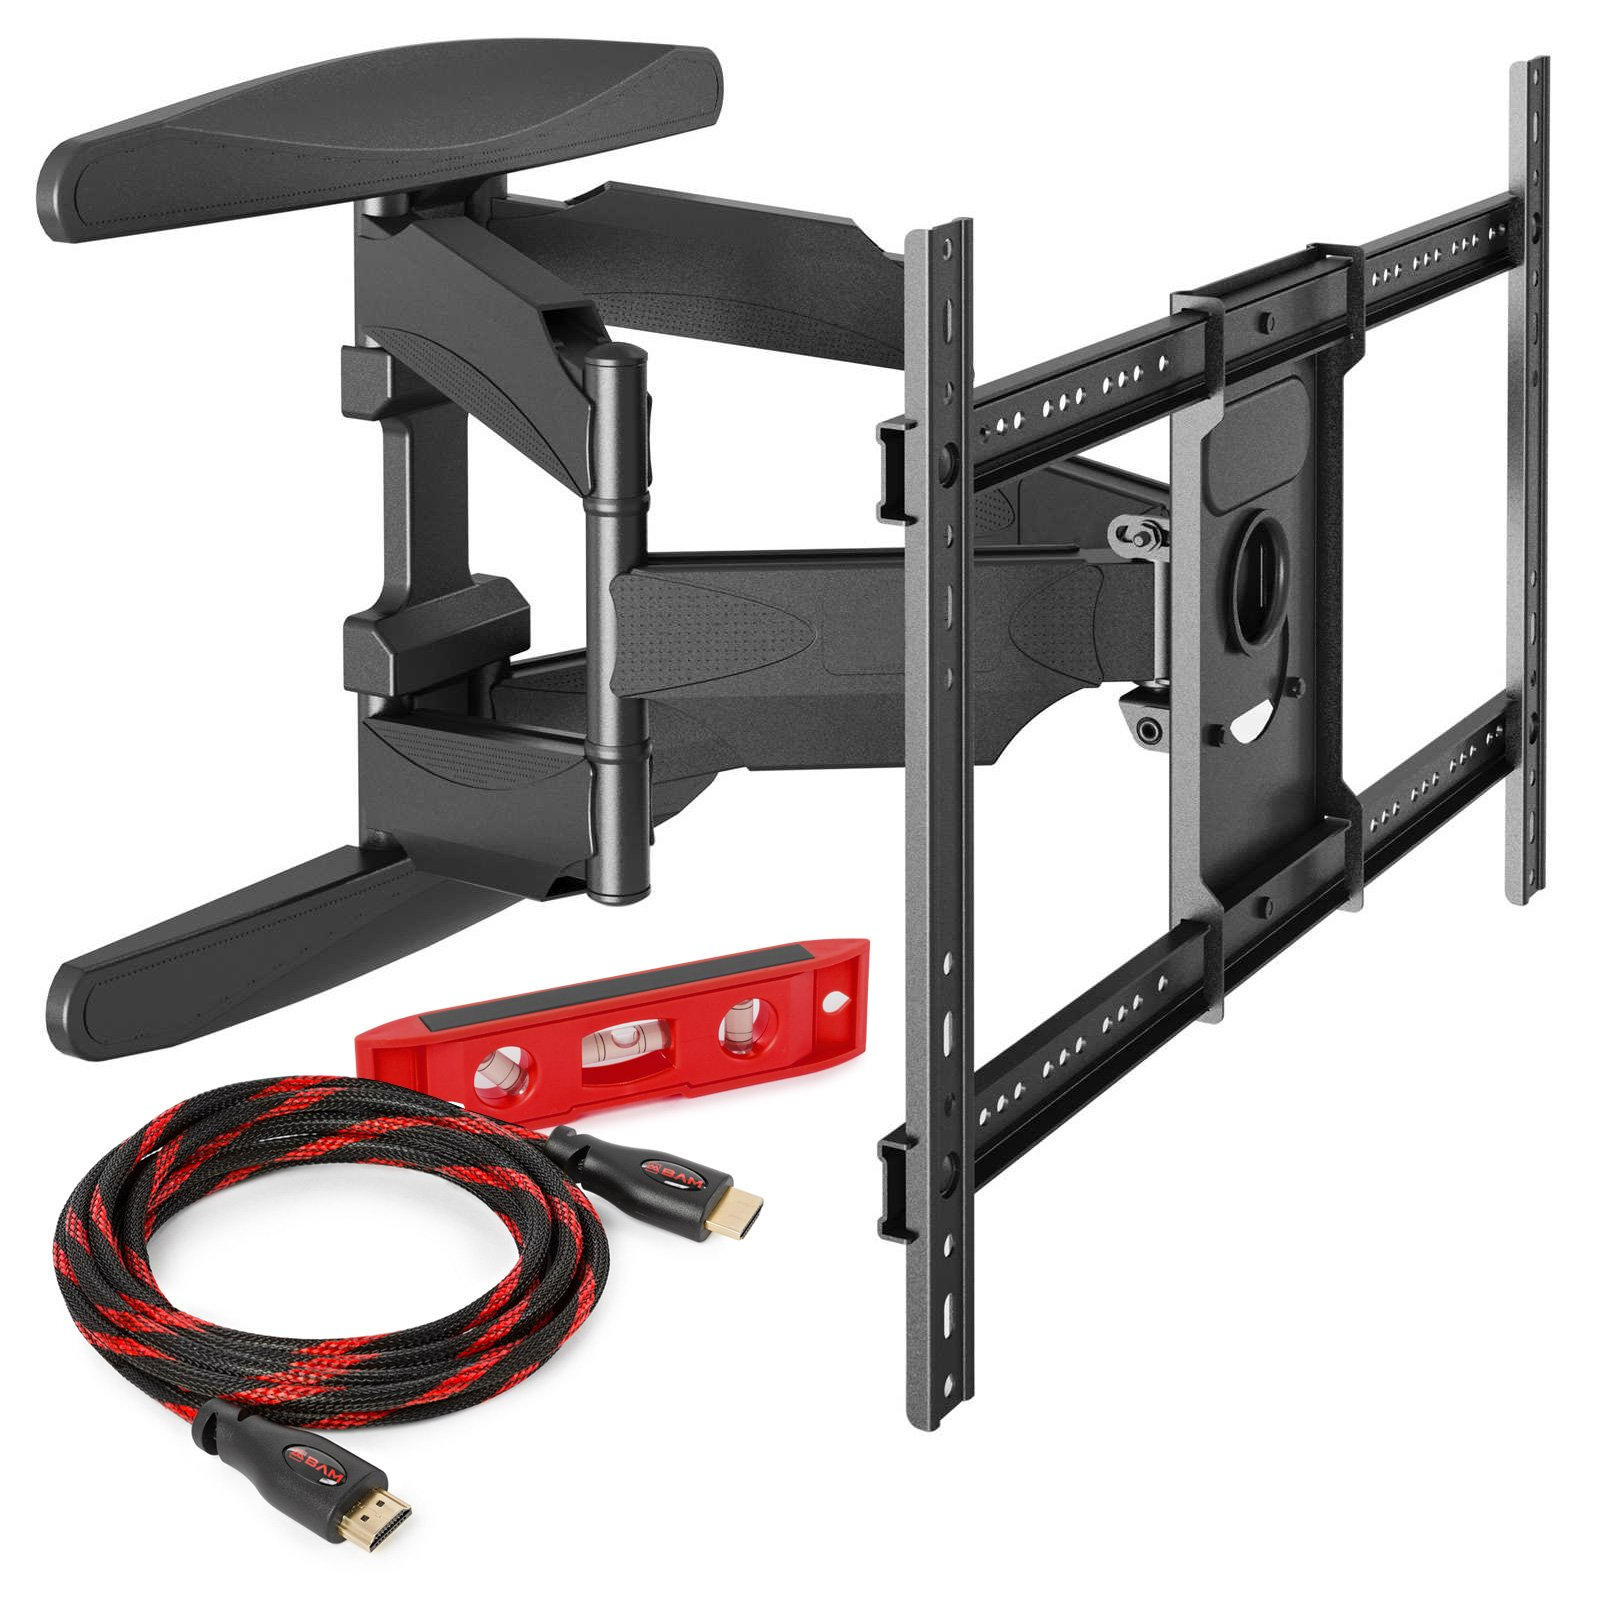 Heavy-Duty Full Motion TV Wall Mount - Articulating Swivel Bracket Fits Flat Screen Televisions from 42'' to 70'' (VESA 400 x 600 Compatible) - Tilt Swing Out Arm with 10' HDMI Cable by Mount Factory